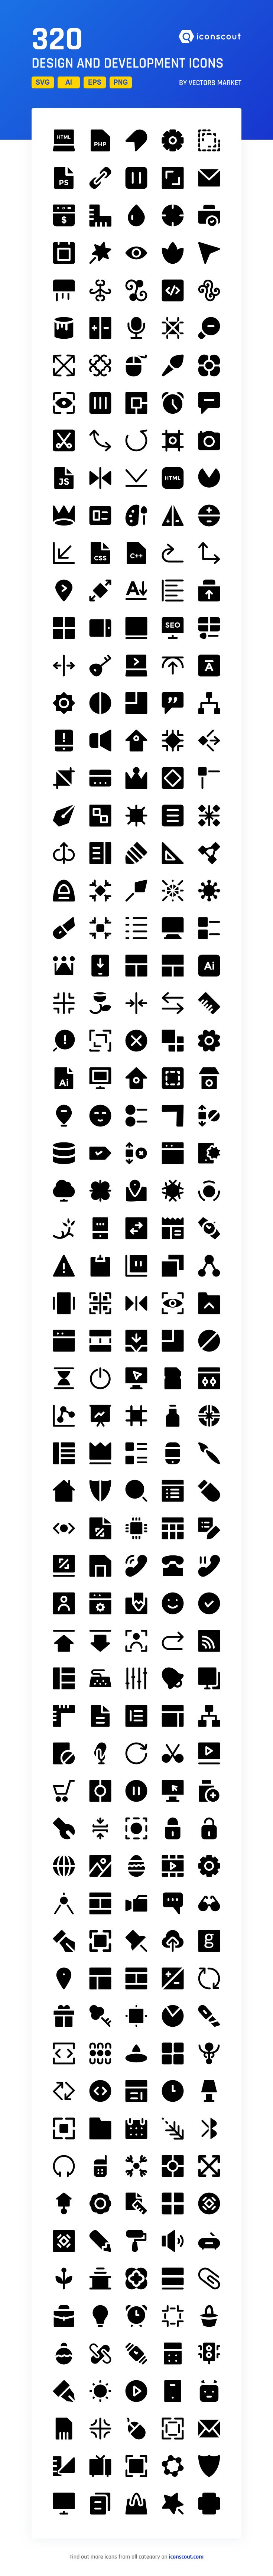 Design And Development  Icon Pack - 320 Solid Icons